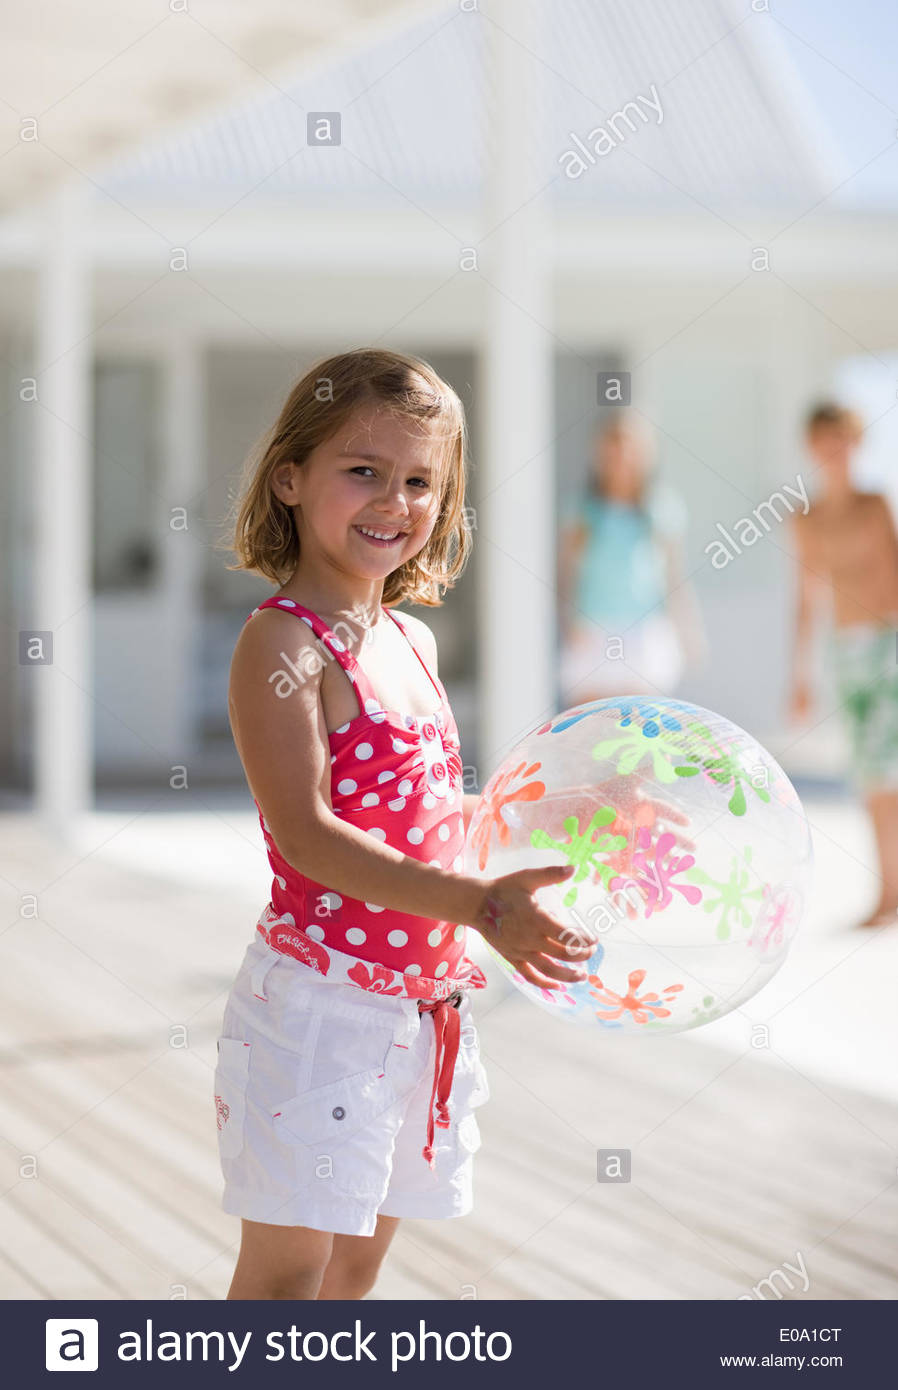 Sister playing with ball - Stock Image